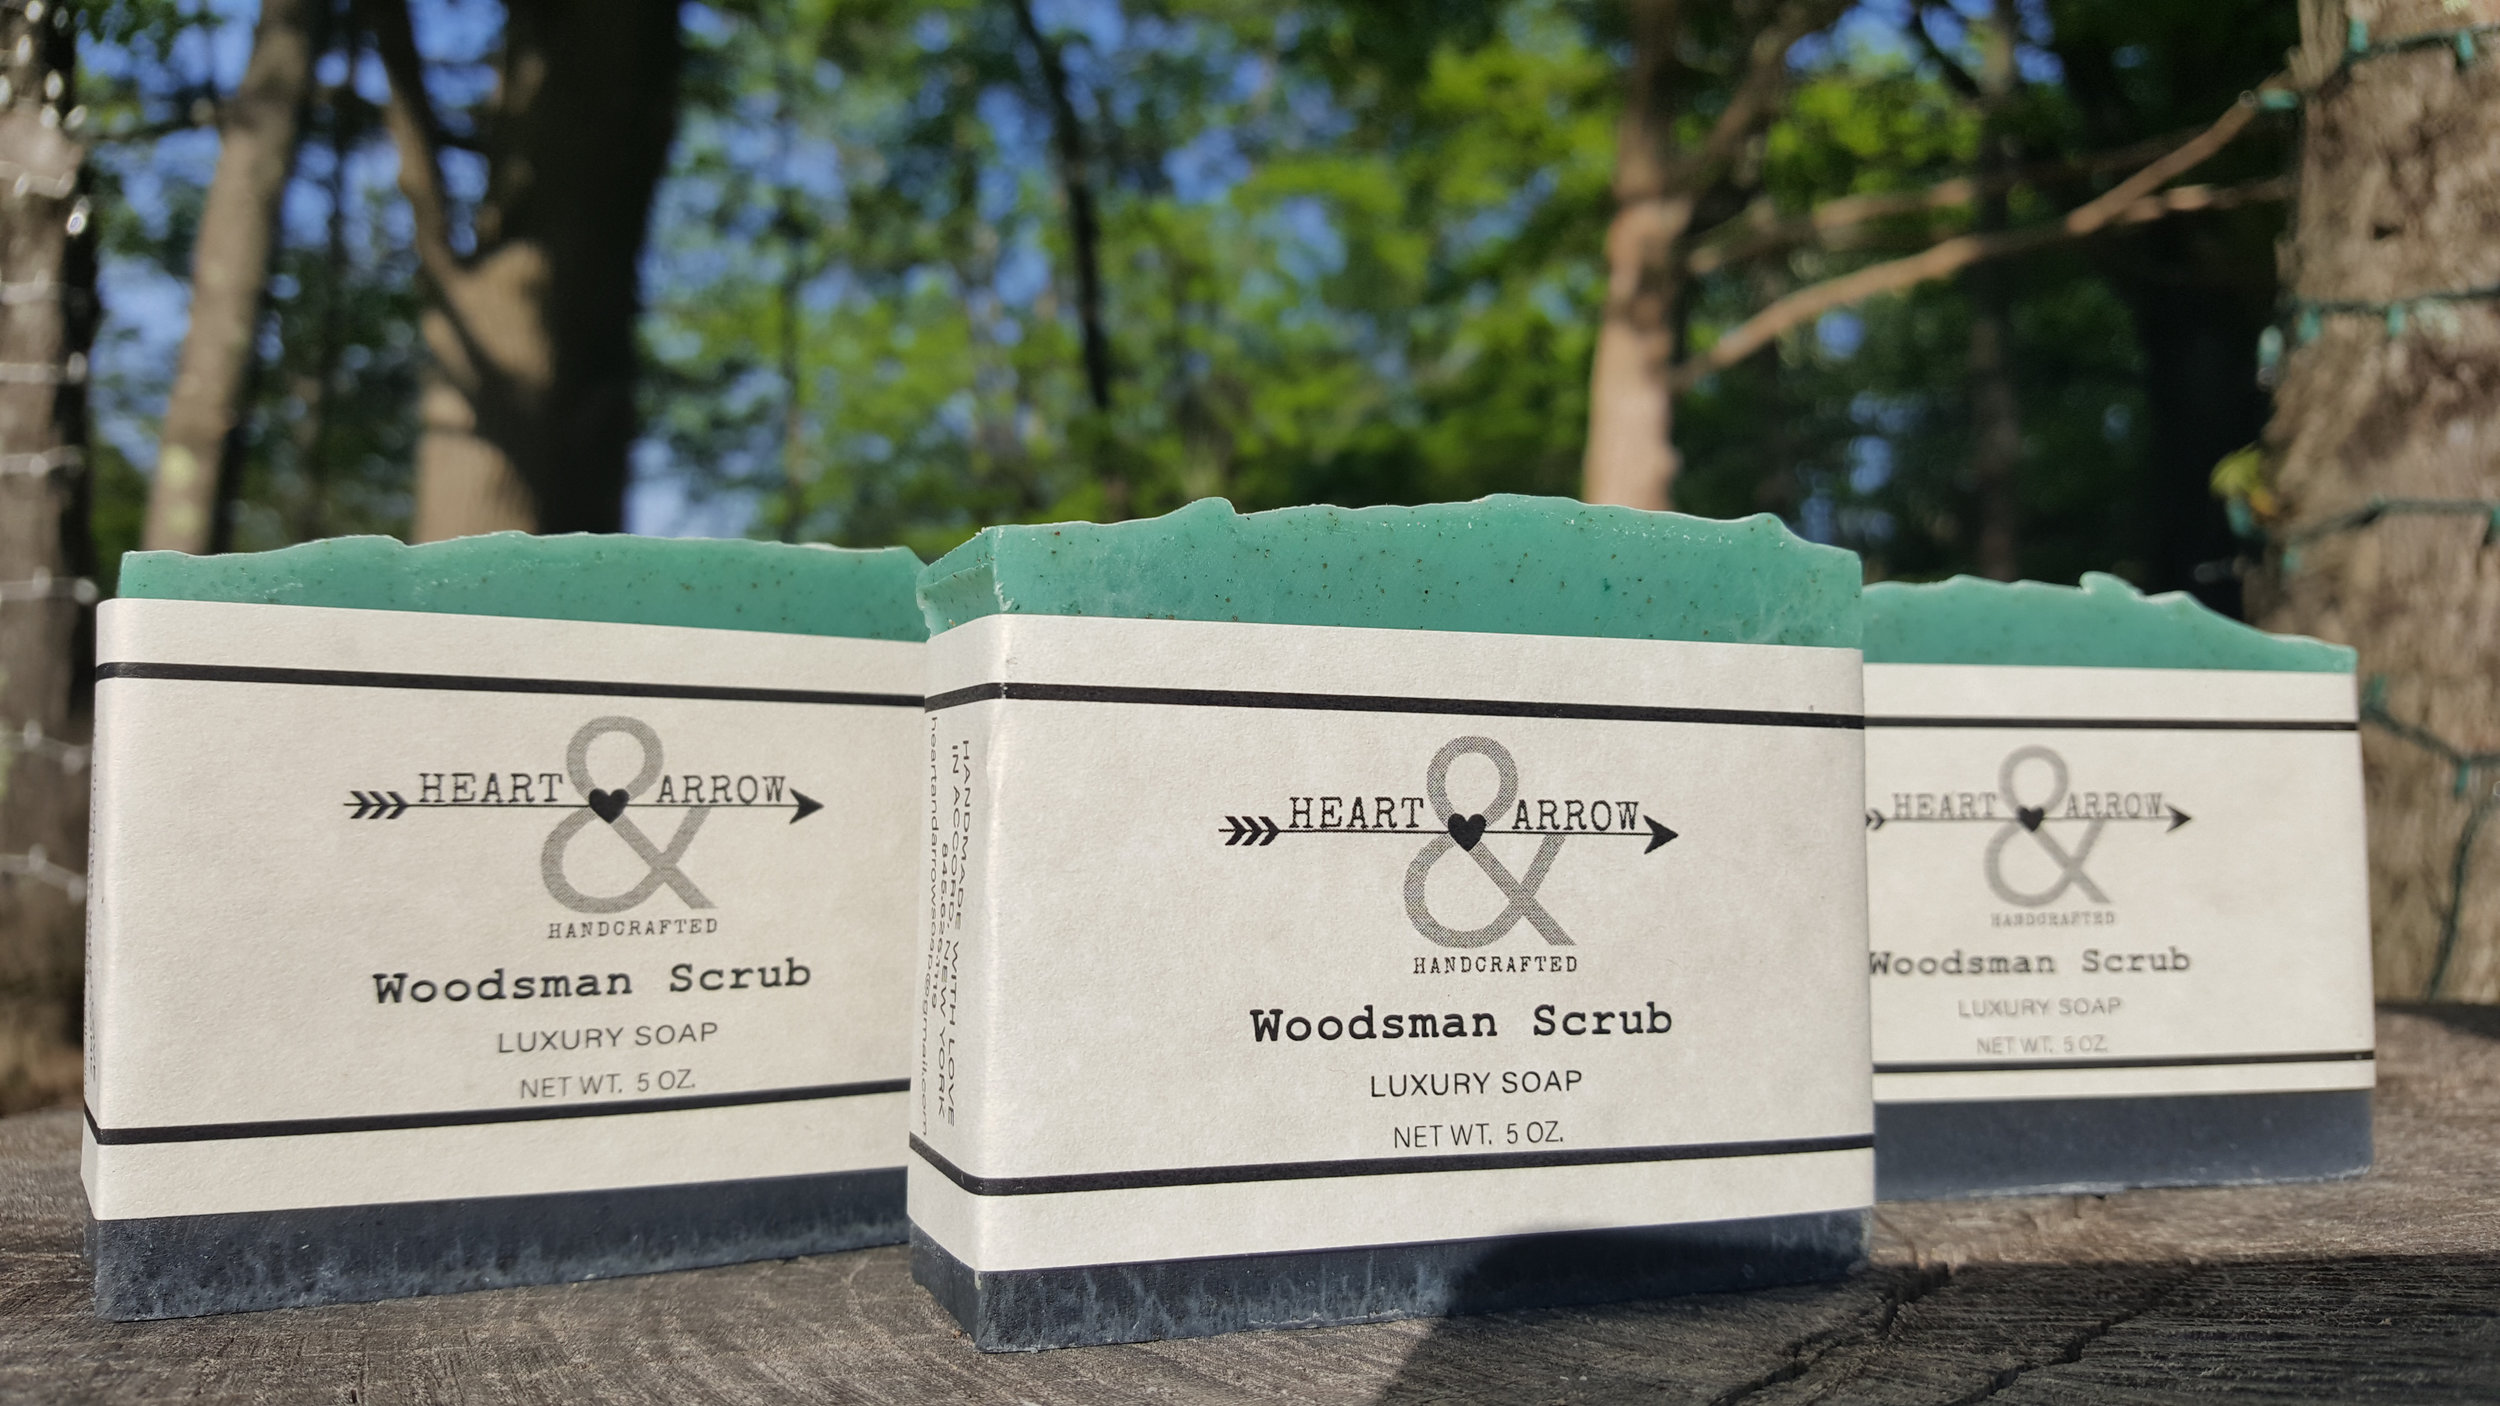 Woodsman Scrub ~ The ultimate man's soap, but amazing for anyone who loves the outdoors and wishes they were showering out in nature instead of in their shower. The best of both worlds.